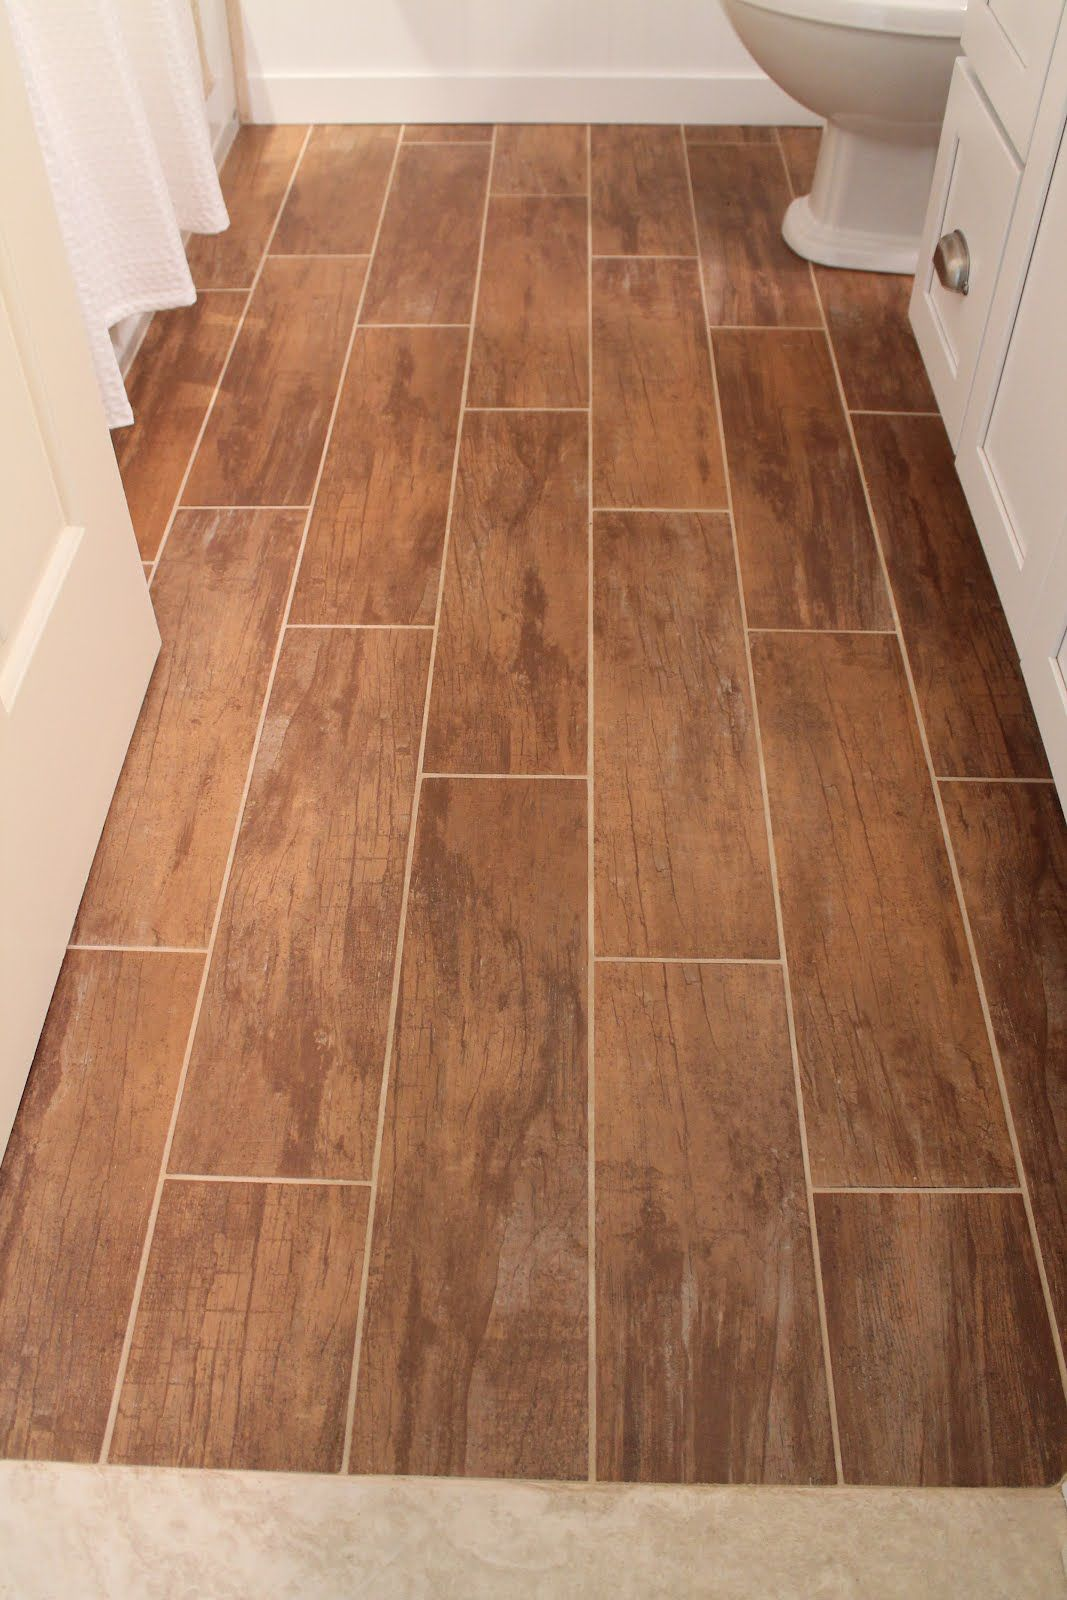 Faux Wood Floor Tile... Probably the best option for us